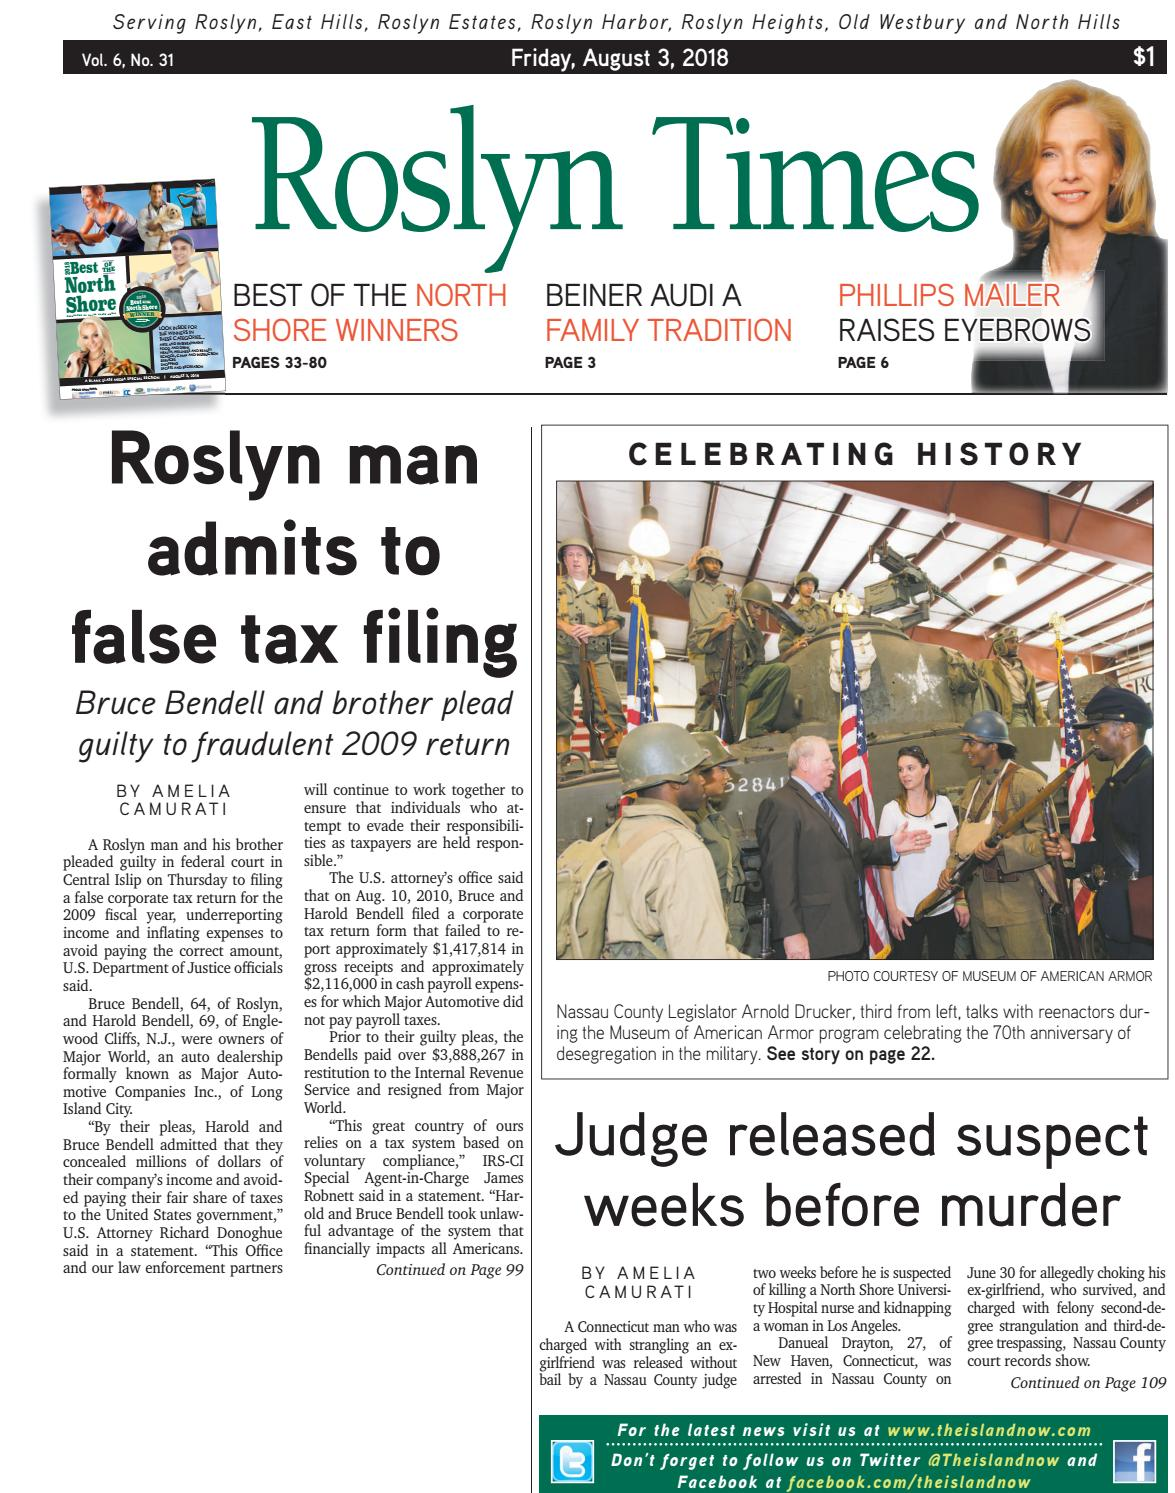 Roslyn Times 080318 By The Island Now